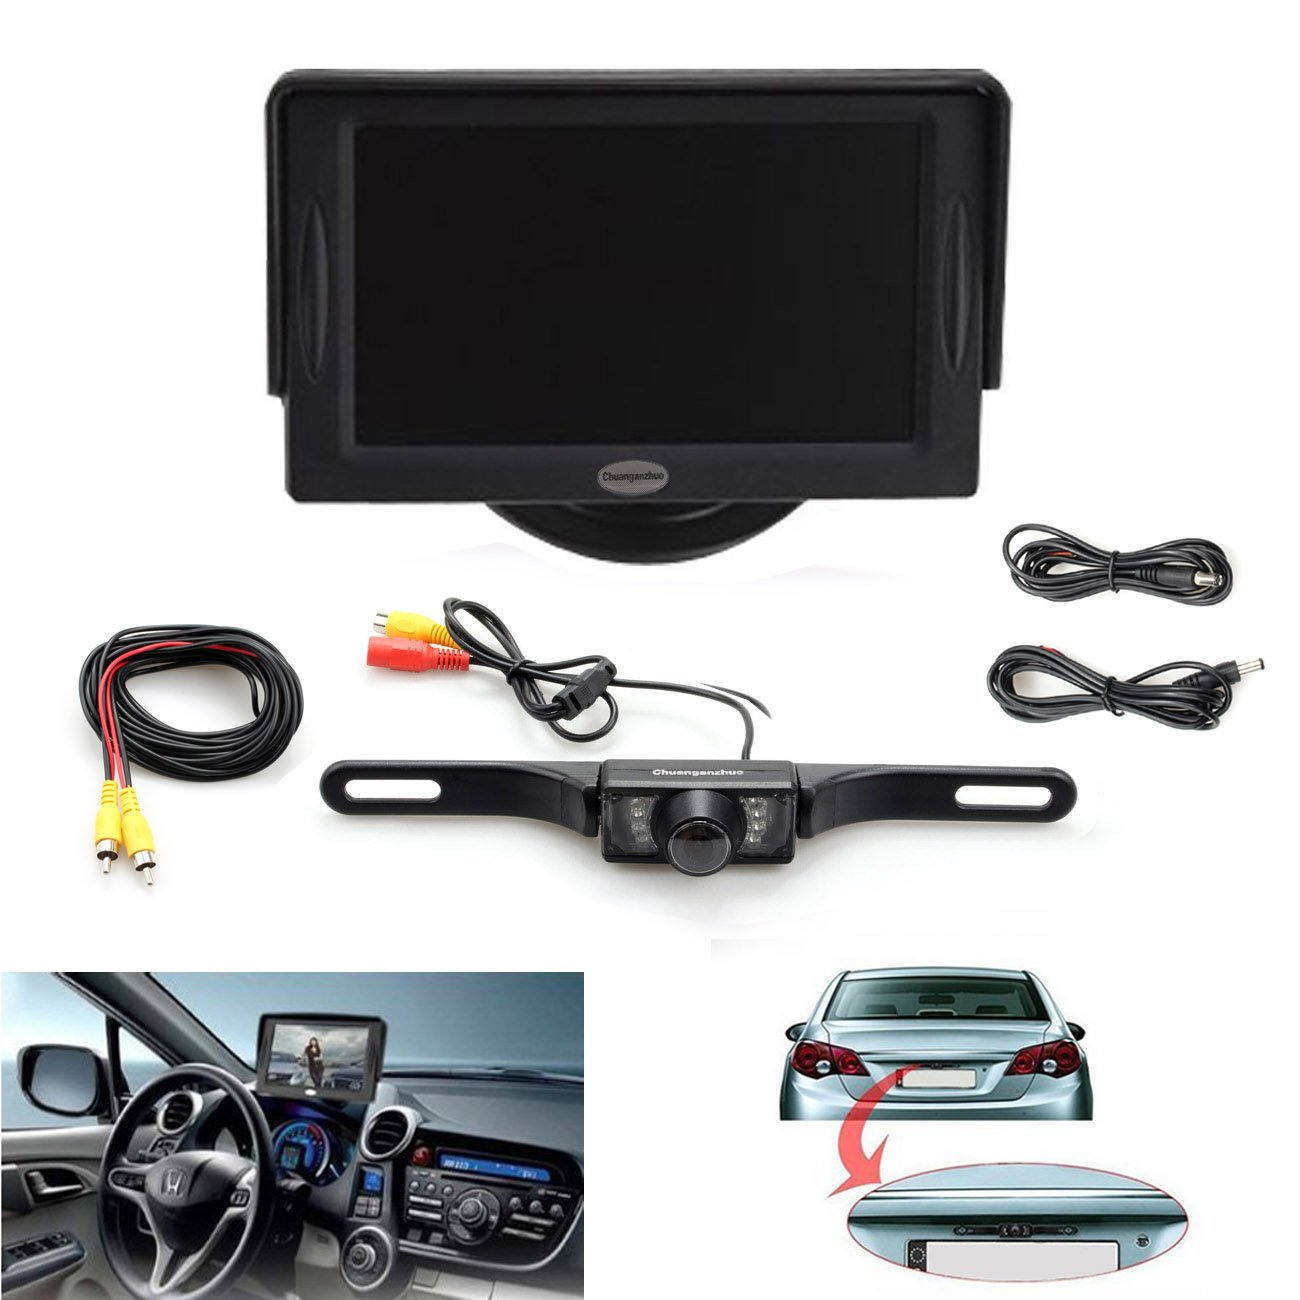 Backup Camera and Monitor Kit For Car,Universal Waterproof Rear-view License Plate Car Rear Backup Parking Camera + 4.3 TFT LCD Rear View Monitor Screen special wifi camera wireless receiver mirror monitor easy diy rear view back up parking backup system for bmw x1 e84 x3 e83